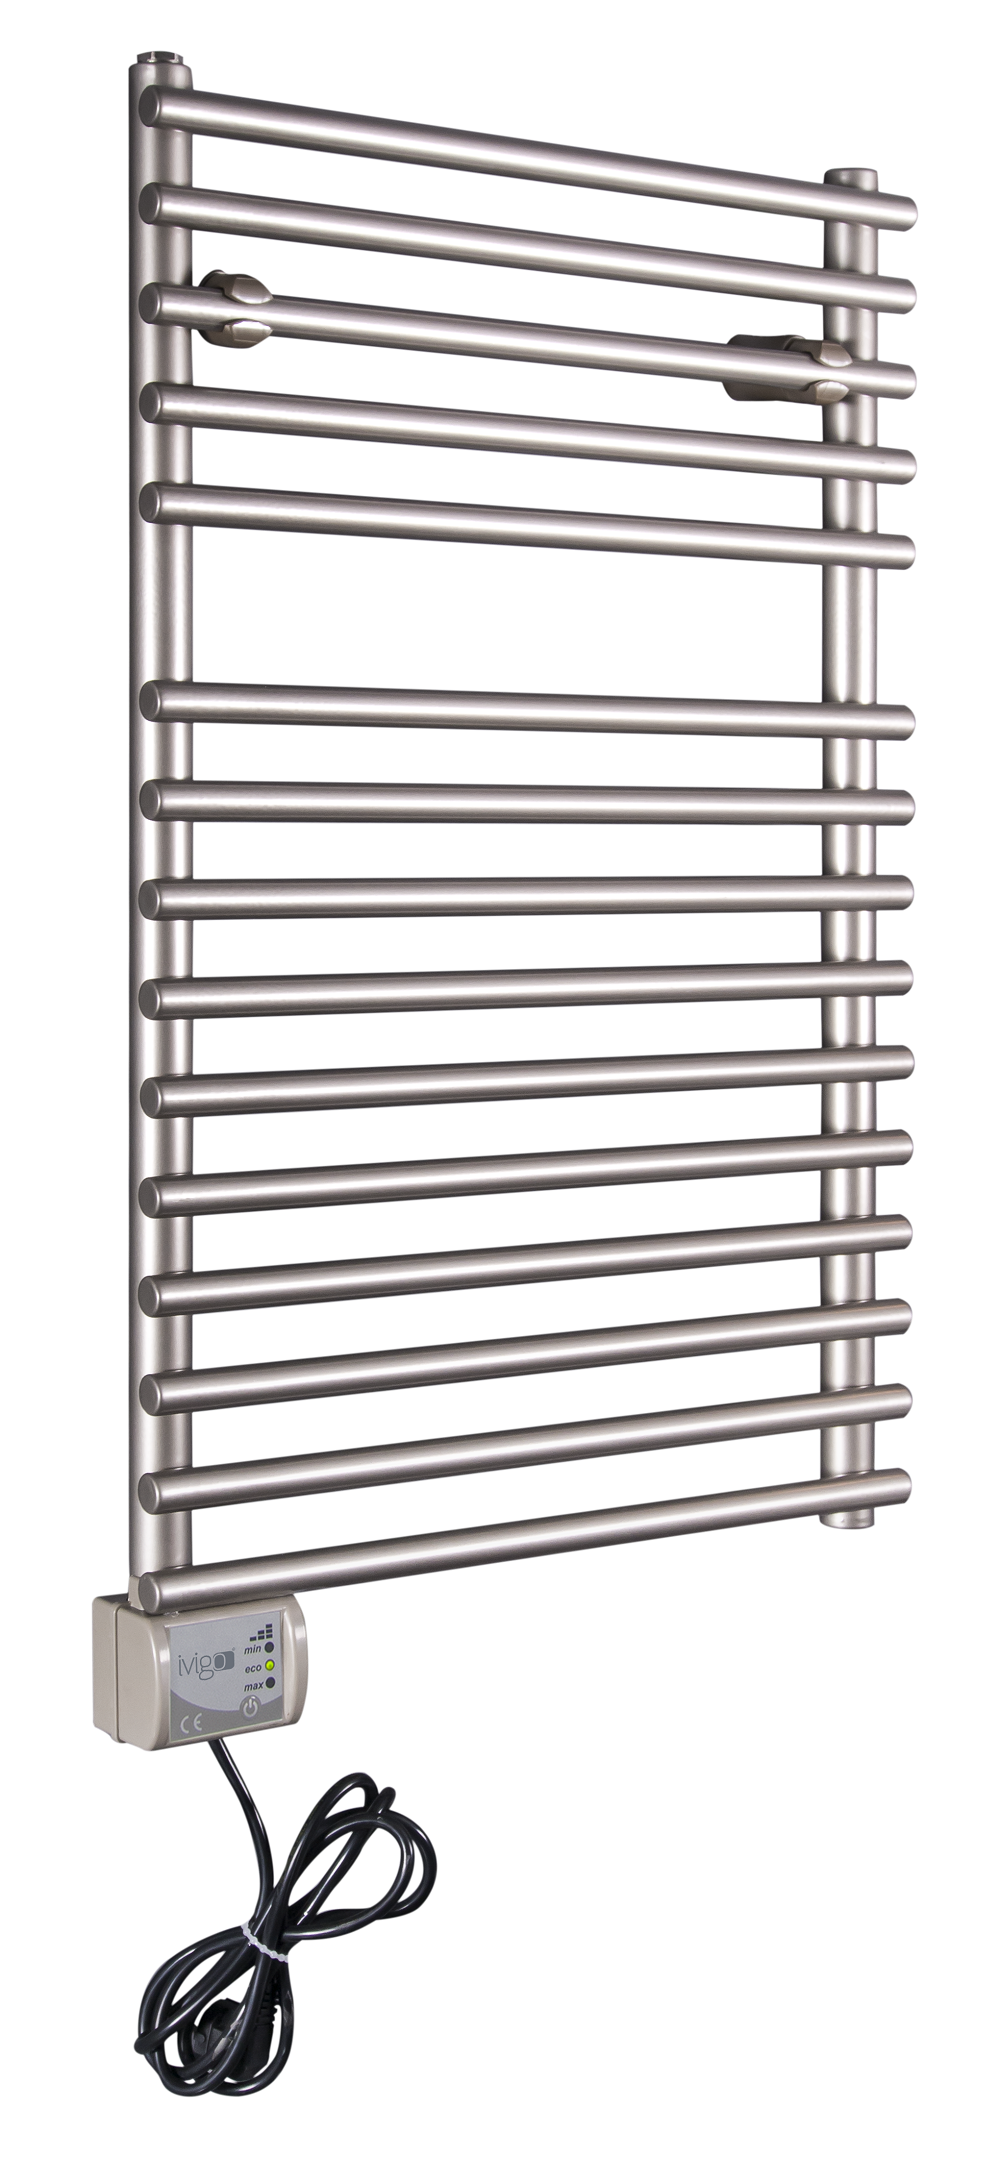 Radiator (calorifer) baie portprosop electric iVigo EHR 5012, 275 W, 500x650 mm, inox fornello imagine